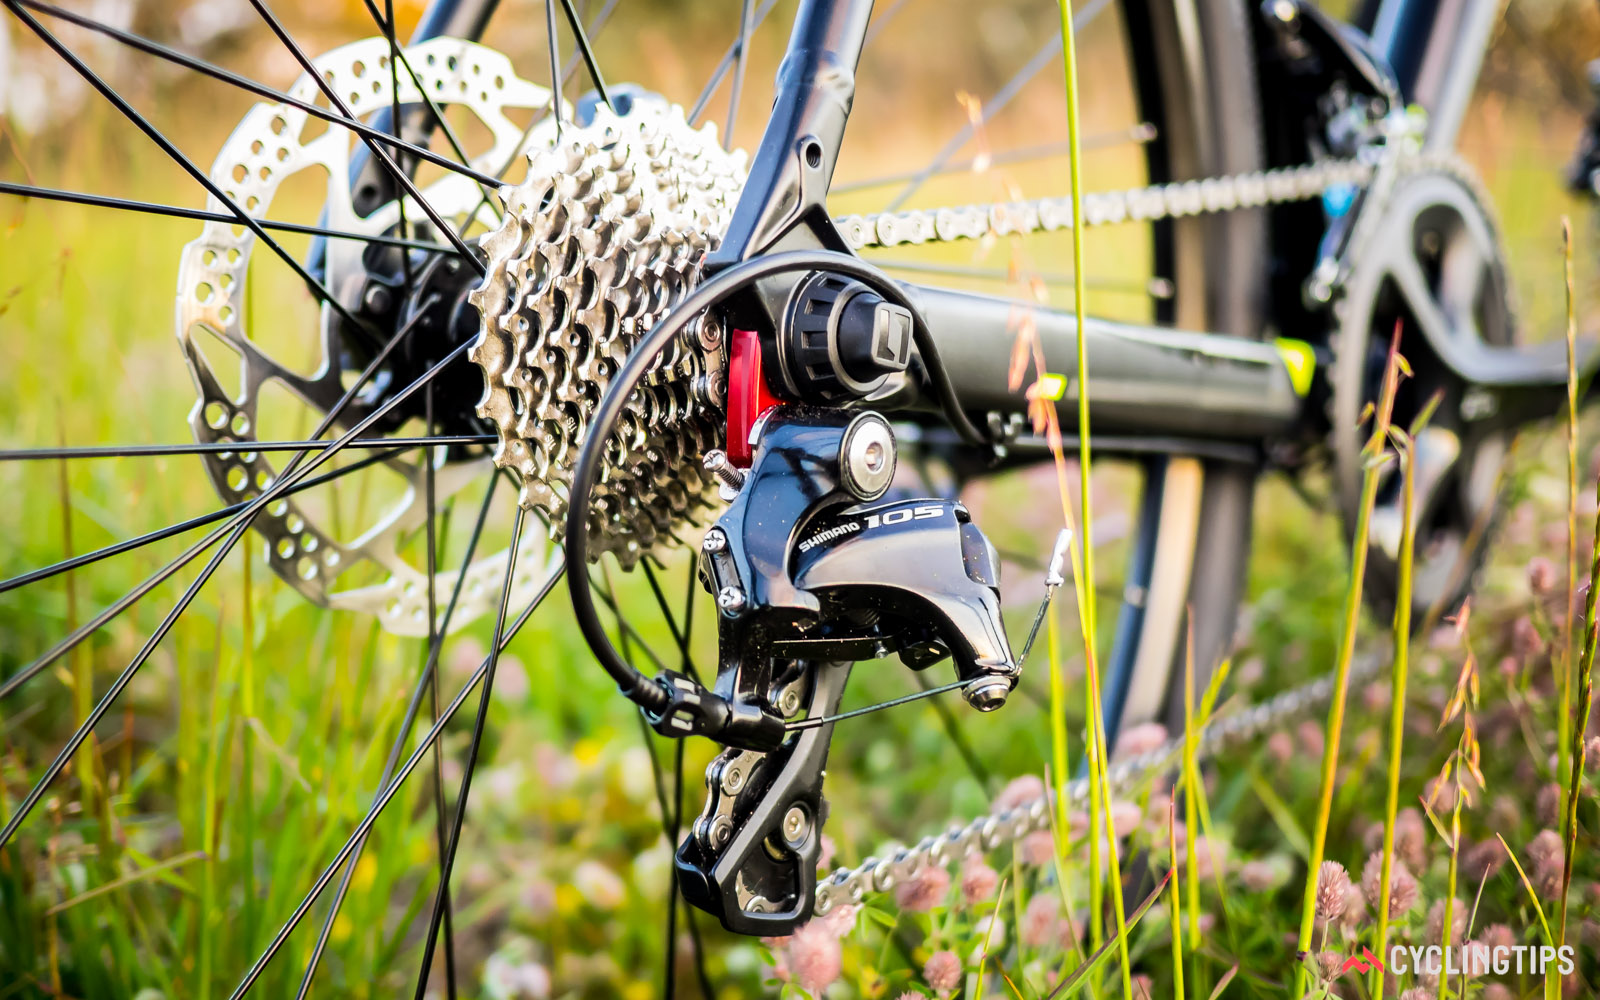 The Bend RV is supplied with a complete Shimano 105 11-speed groupset however the stock short-cage rear derailleur limits the lowest gear to 28T.